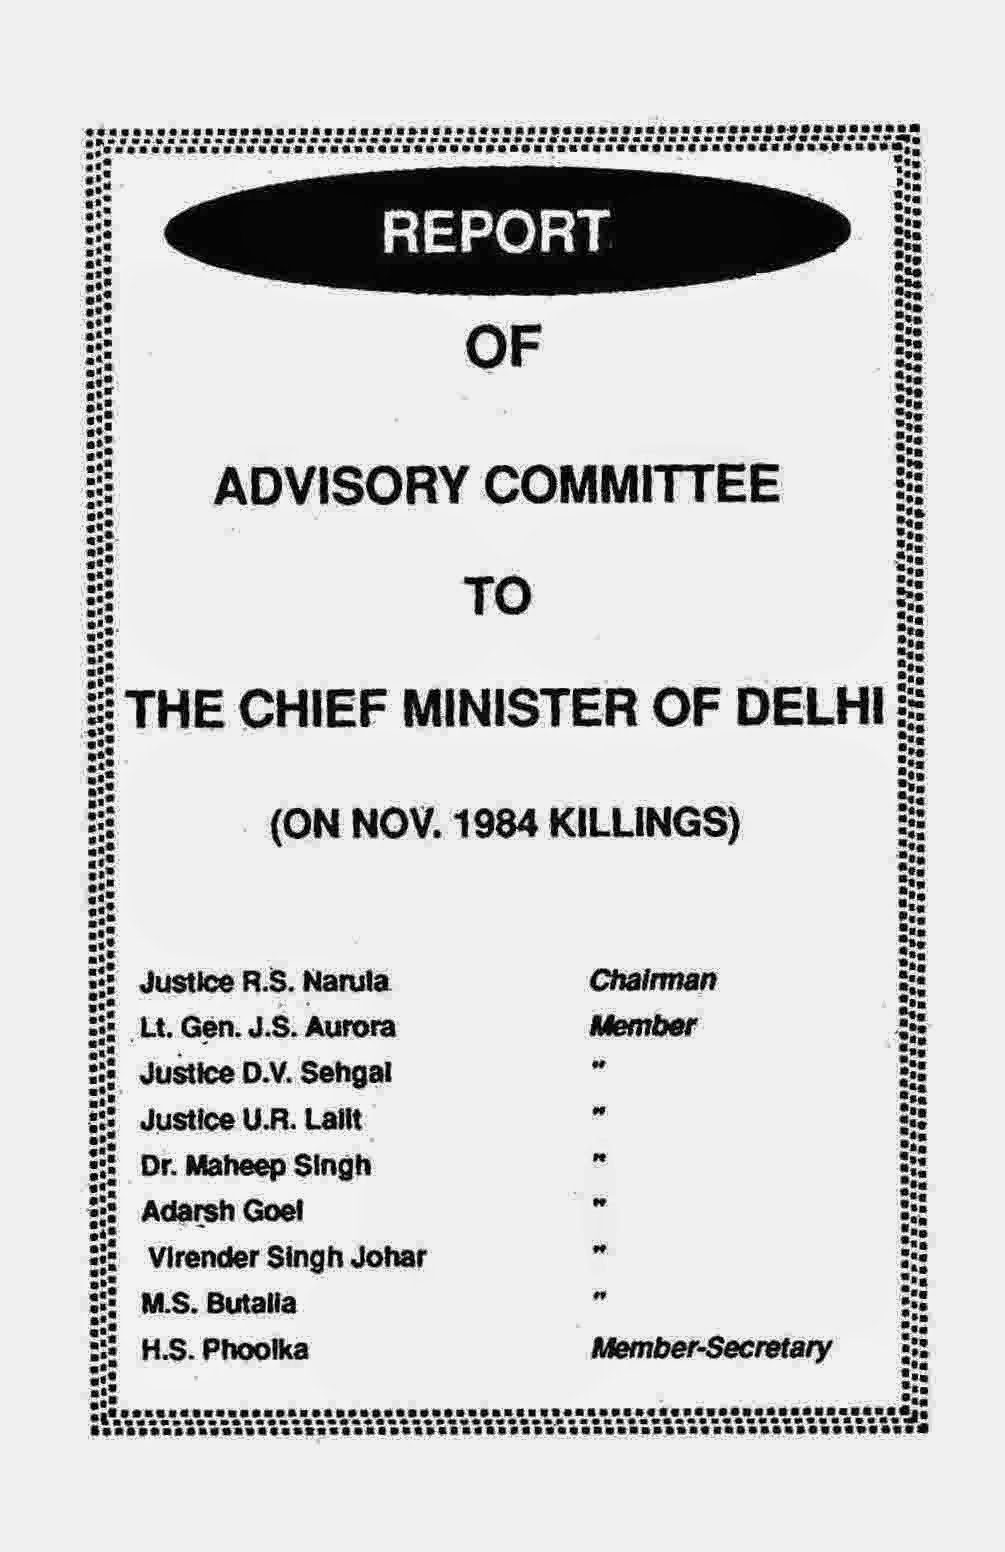 Report Of Advisory Committee To chief minister of delhi on Nov 1984 killings